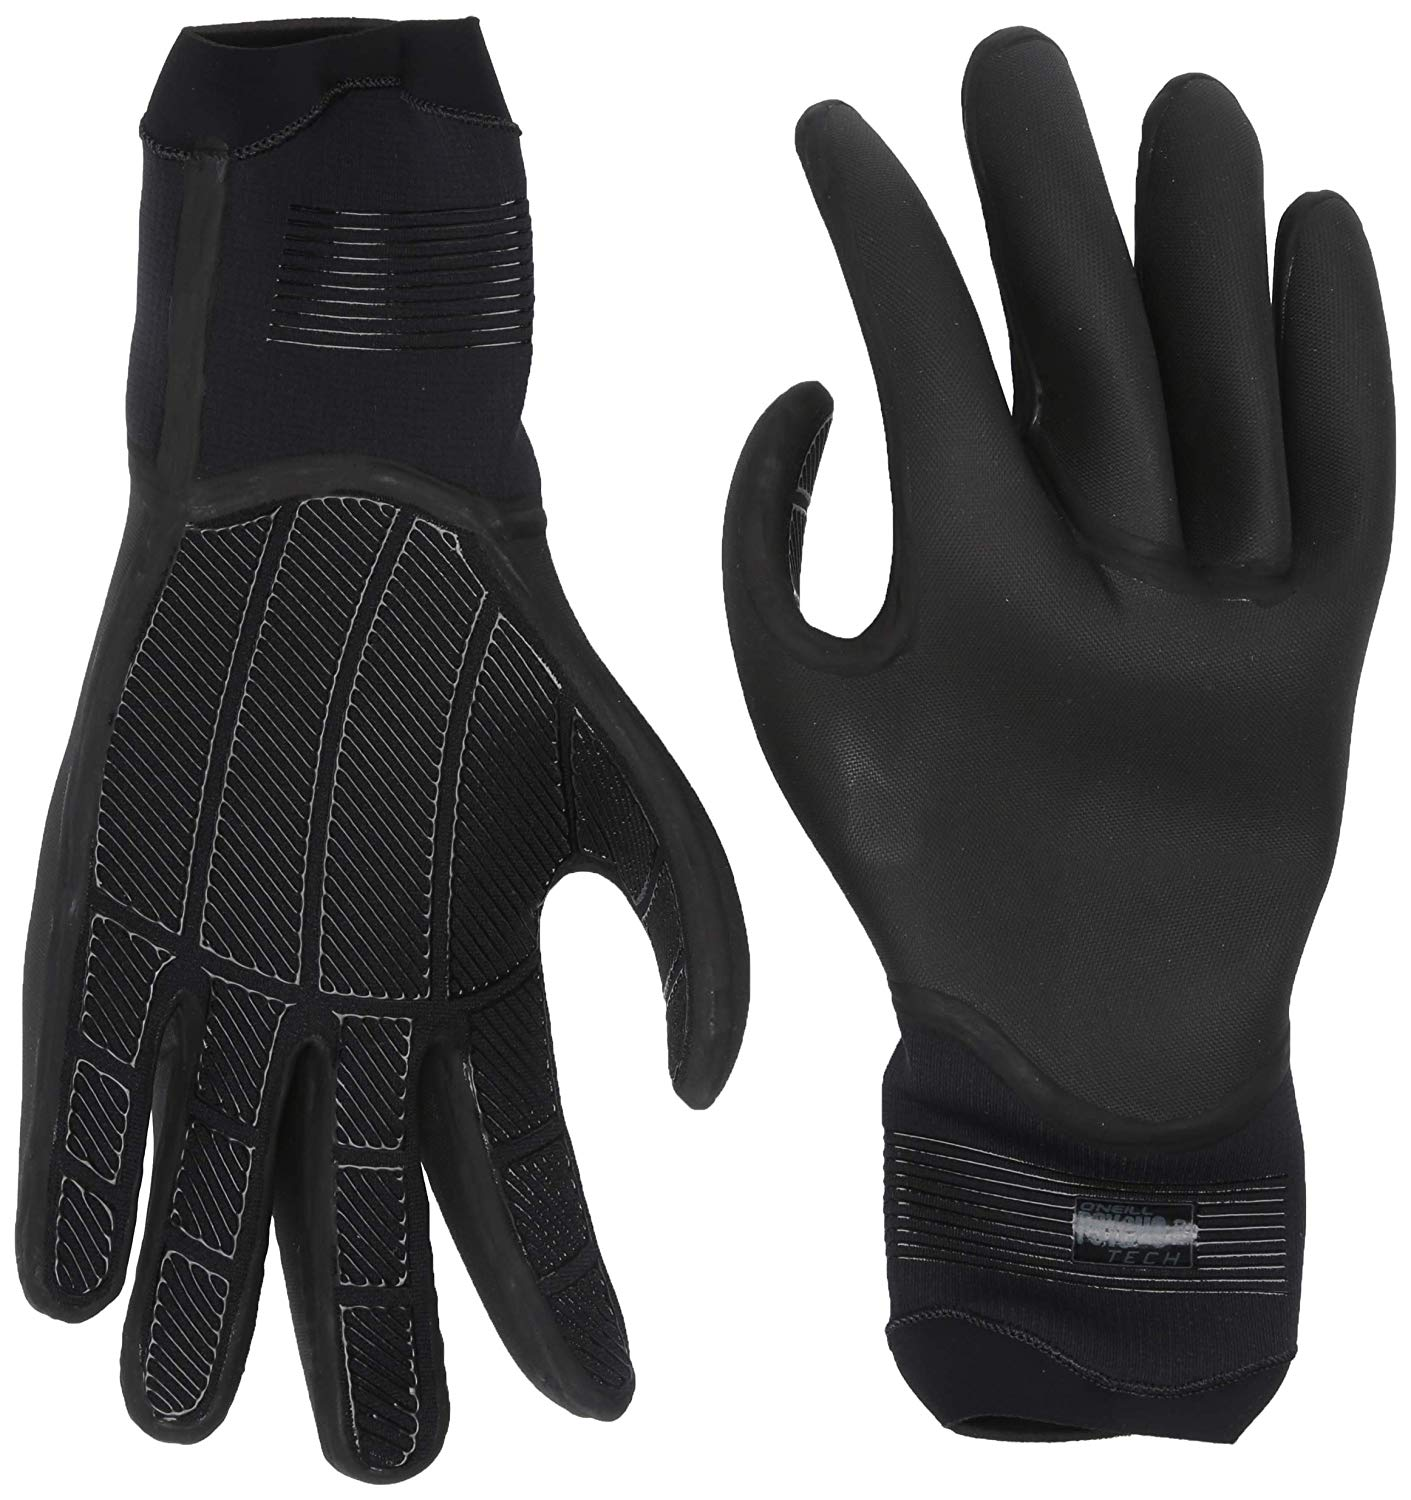 A top-rated, and quite affordable pair of wetsuit gloves, as found on Amazon.